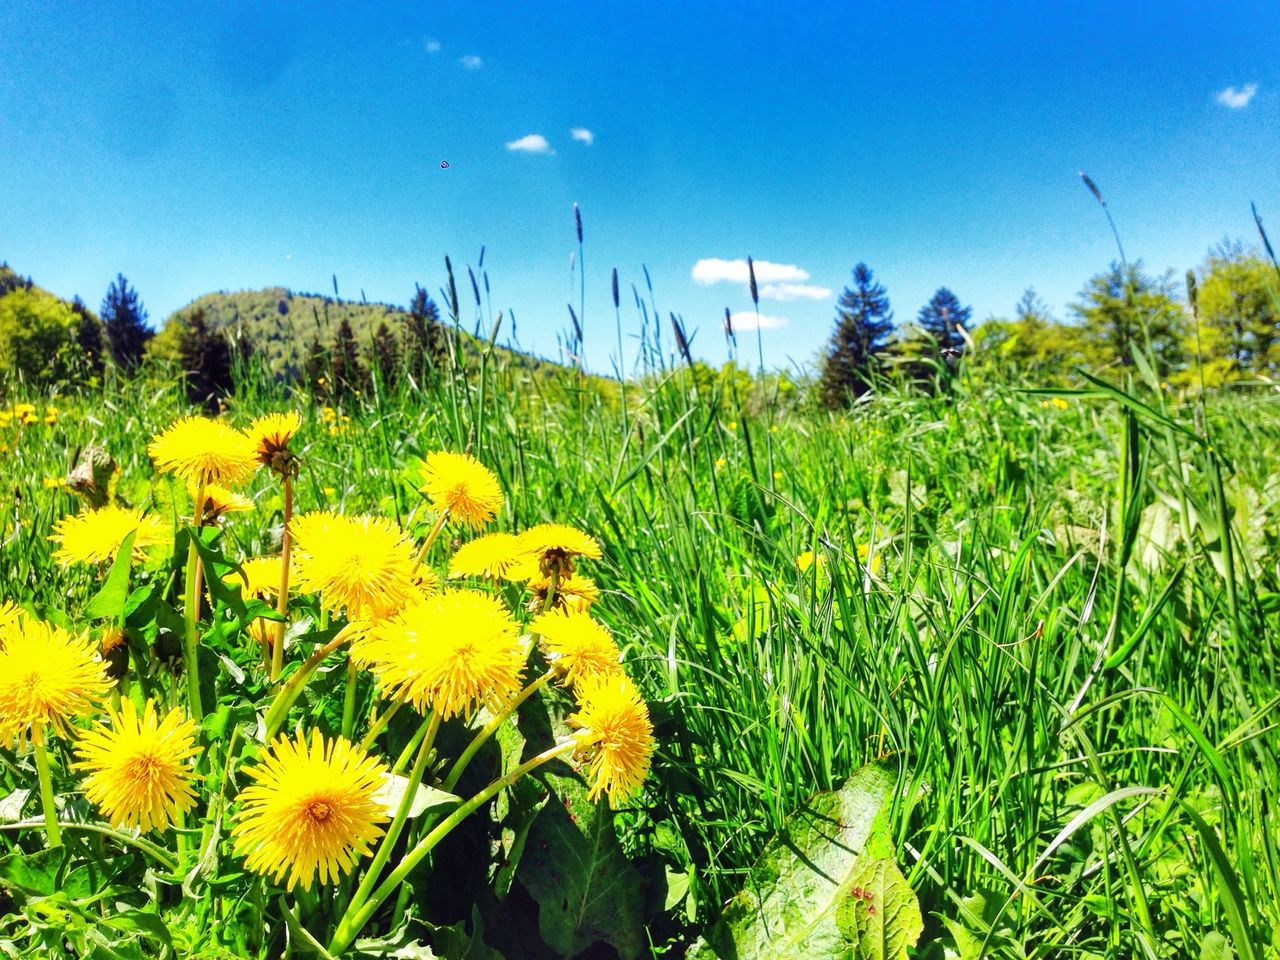 Dandelion in bloom in meadow